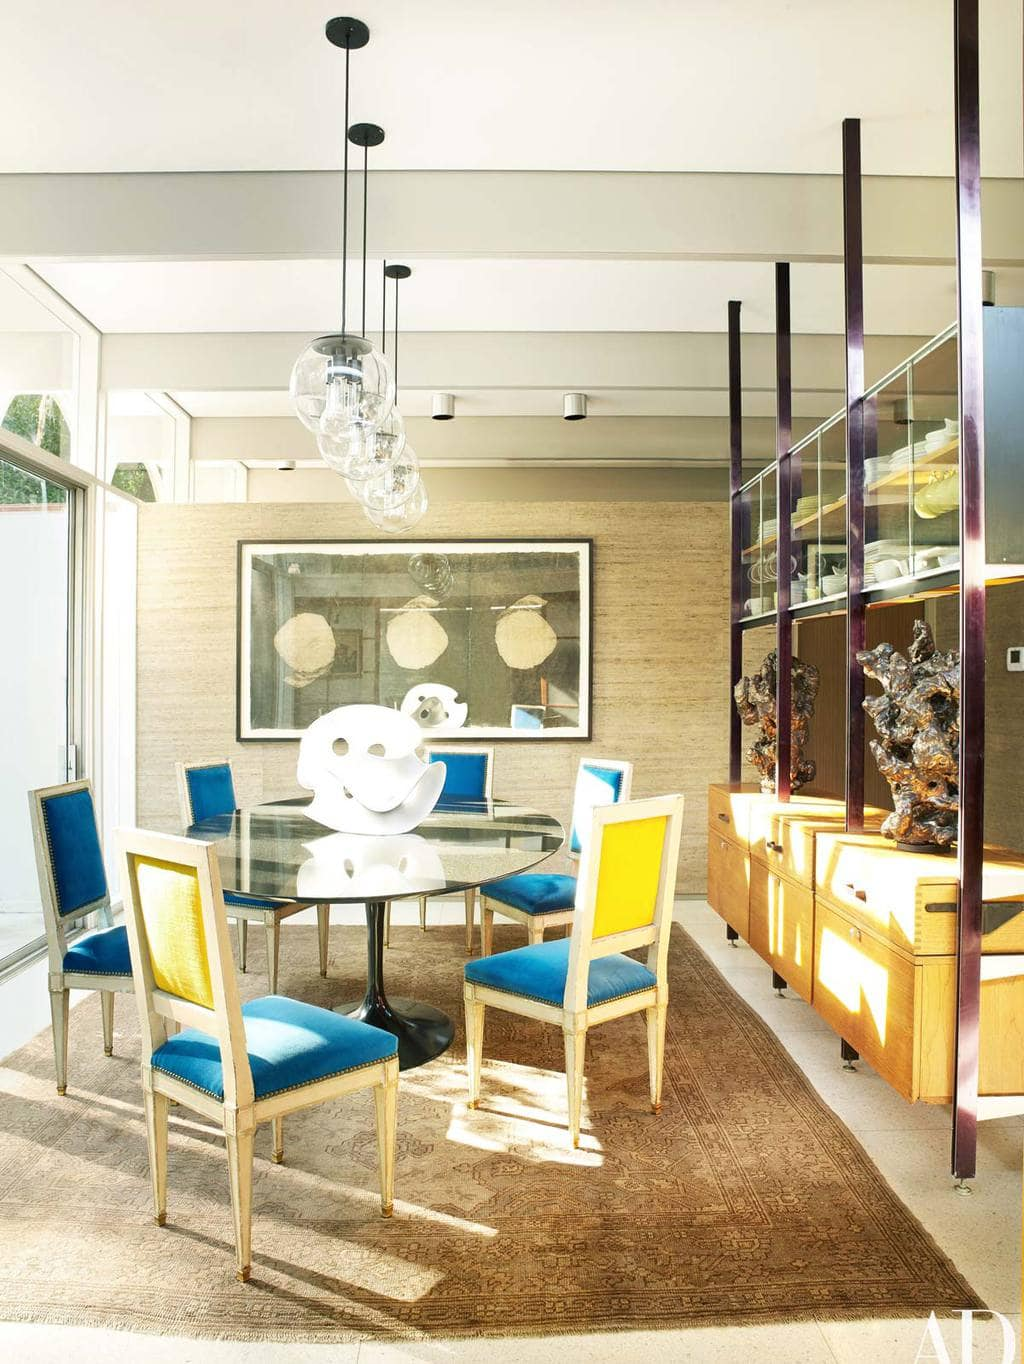 Dining Room In Modernist New Orleans Home Via @thouswellblog